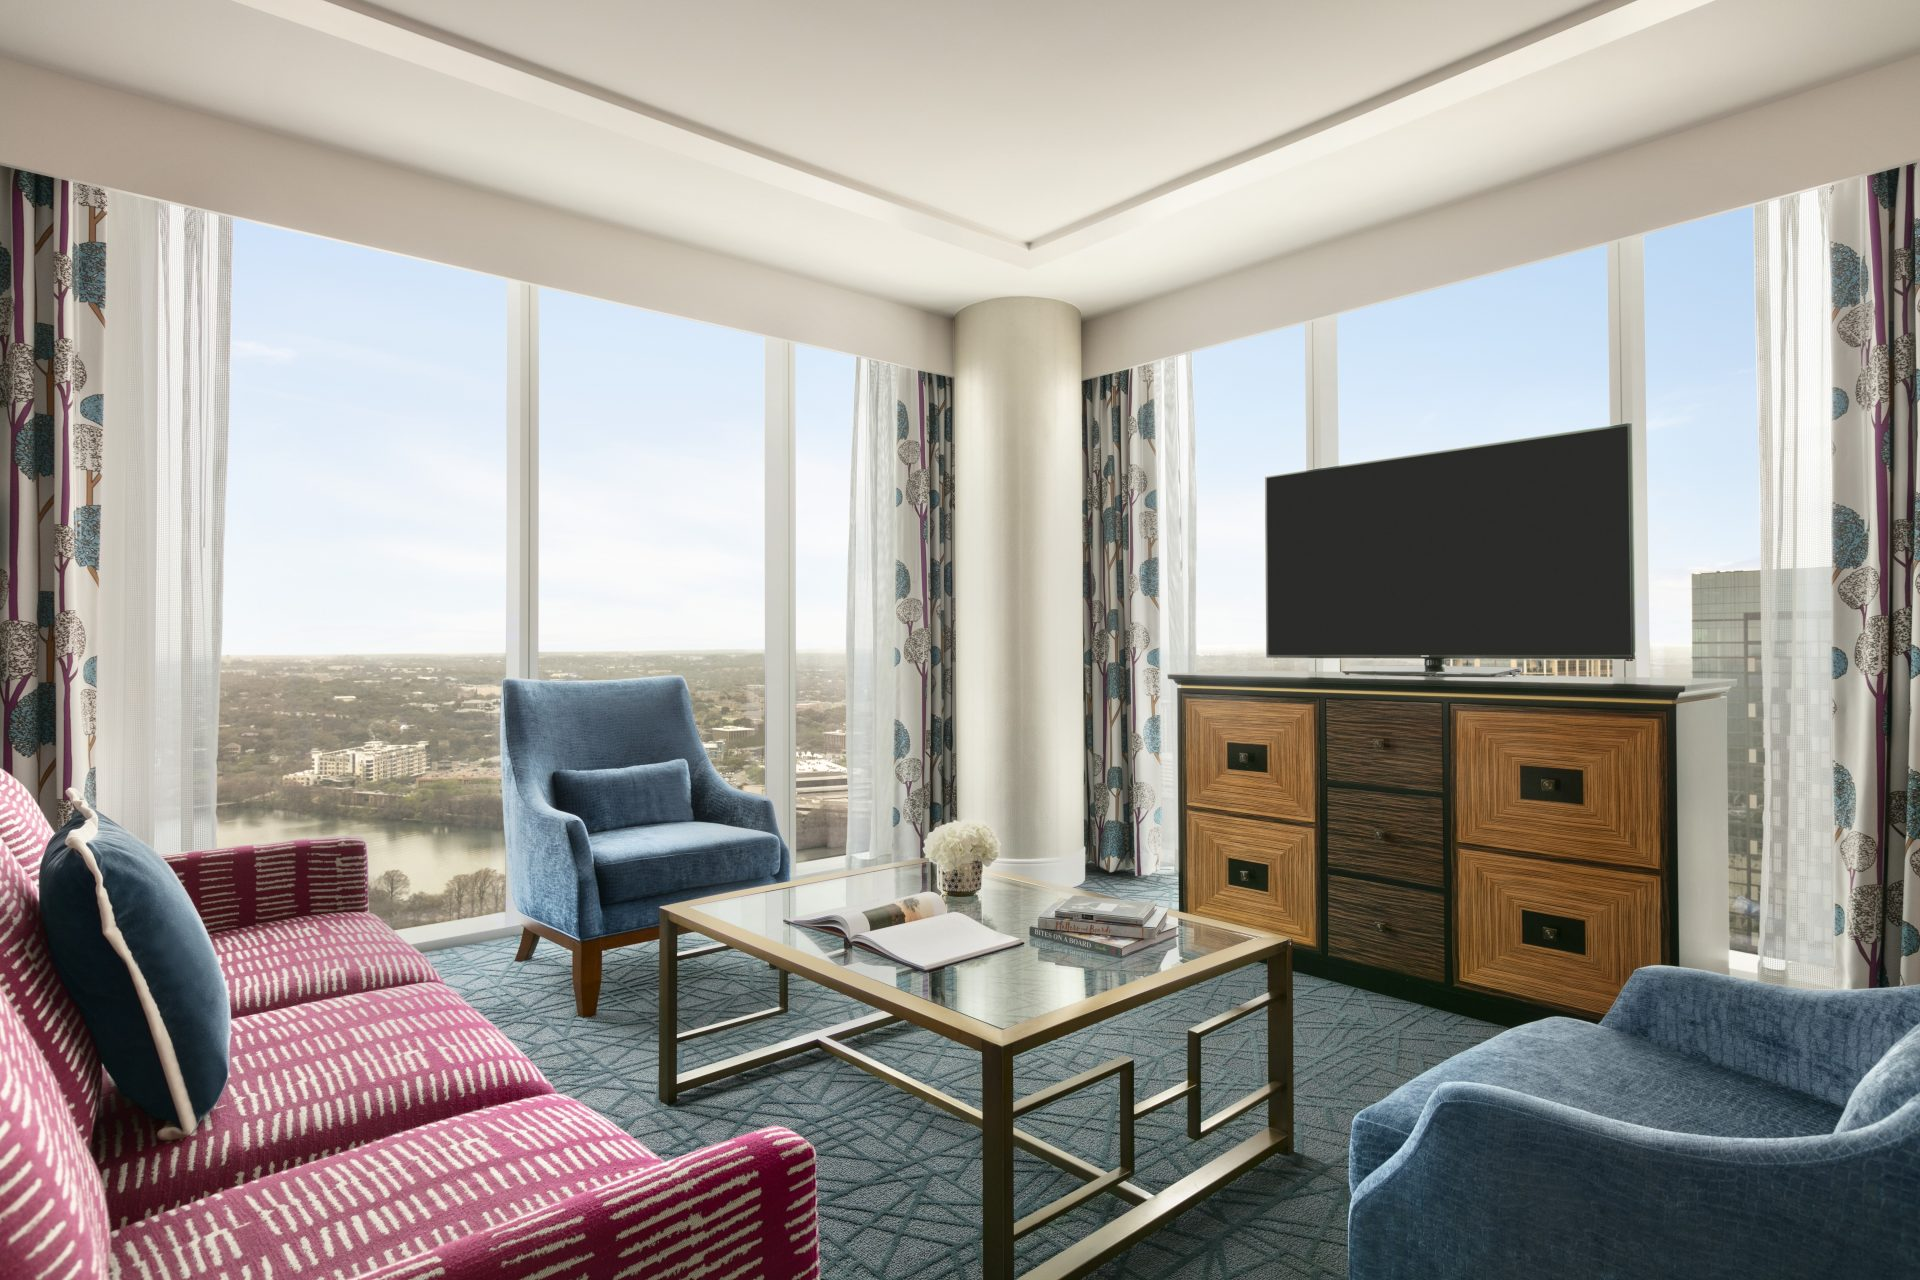 Angled view of Grand suite lounge area with couch, 2 armchairs, coffee table, flatscreen on a dresser and a wrap around downtown view